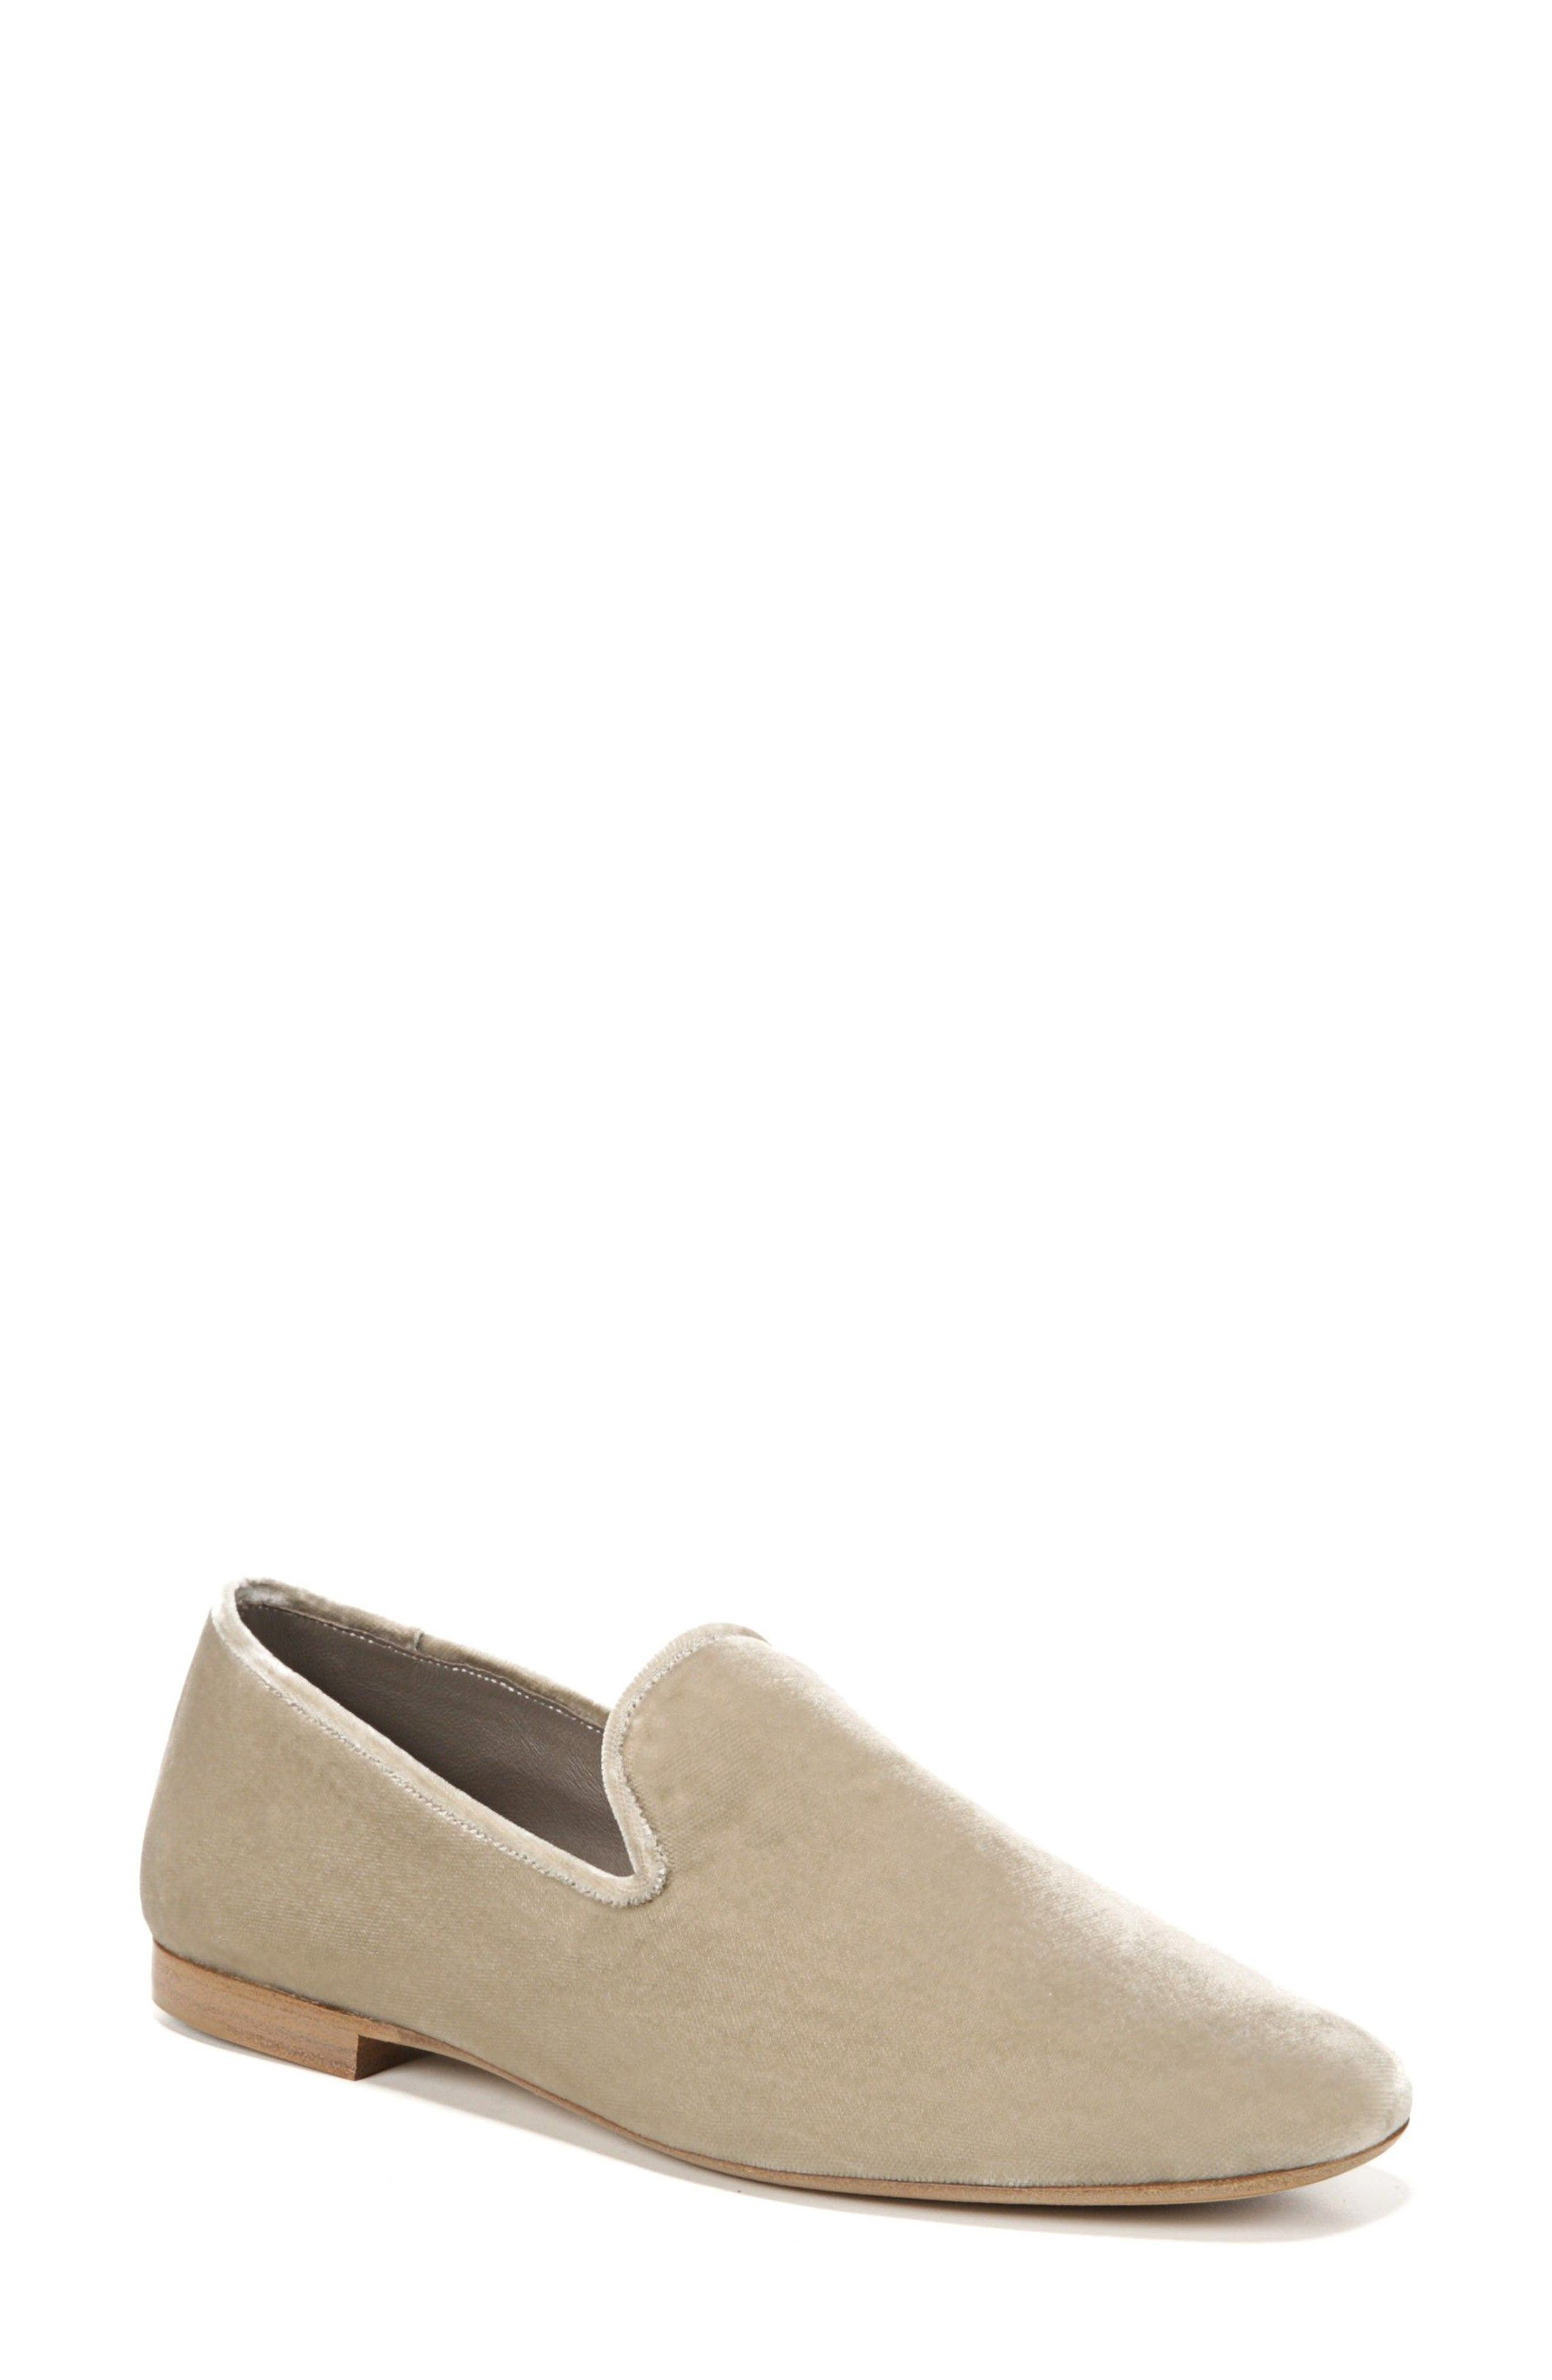 'Bray' Loafer,                             Main thumbnail 1, color,                             024